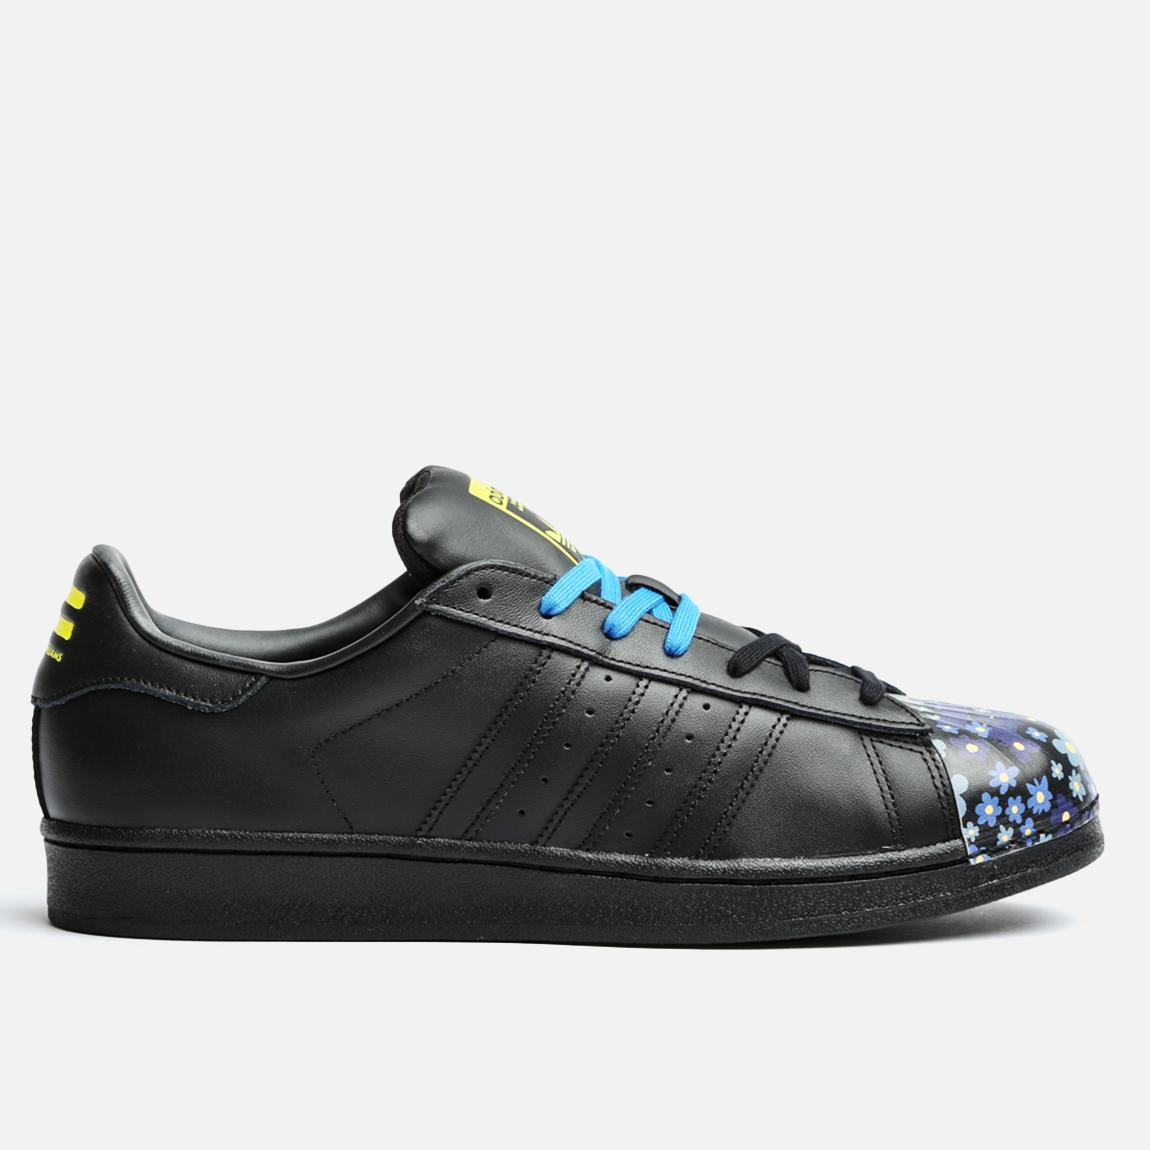 best sneakers 40c92 8e153 Superstar Pharrell Supershell - S83352 adidas Originals Sneakers    Superbalist.com